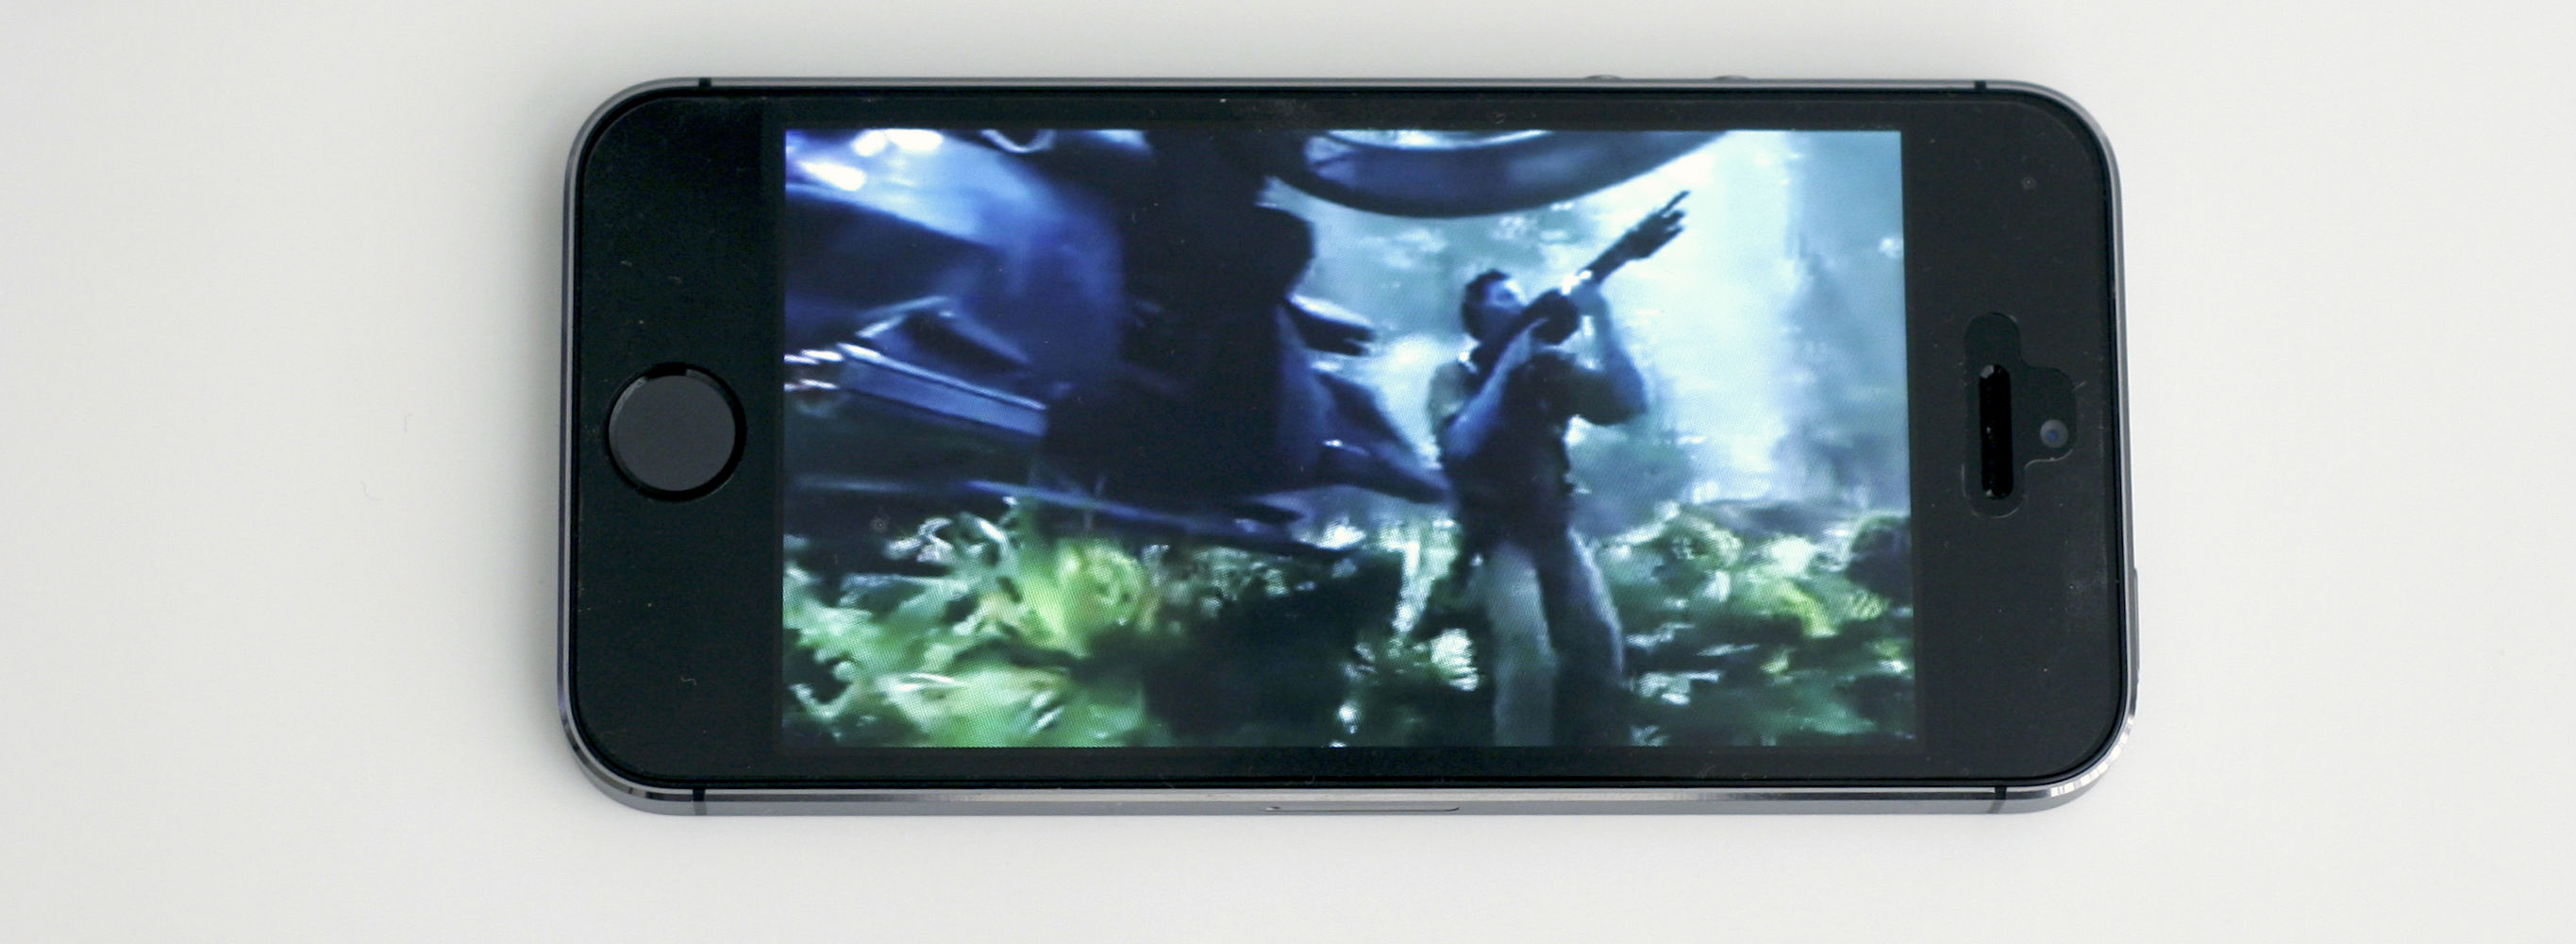 EyeFly3D brings glasses-free 3D to your iPhone, iPad and Nexus 7, if you're into that sort of thing